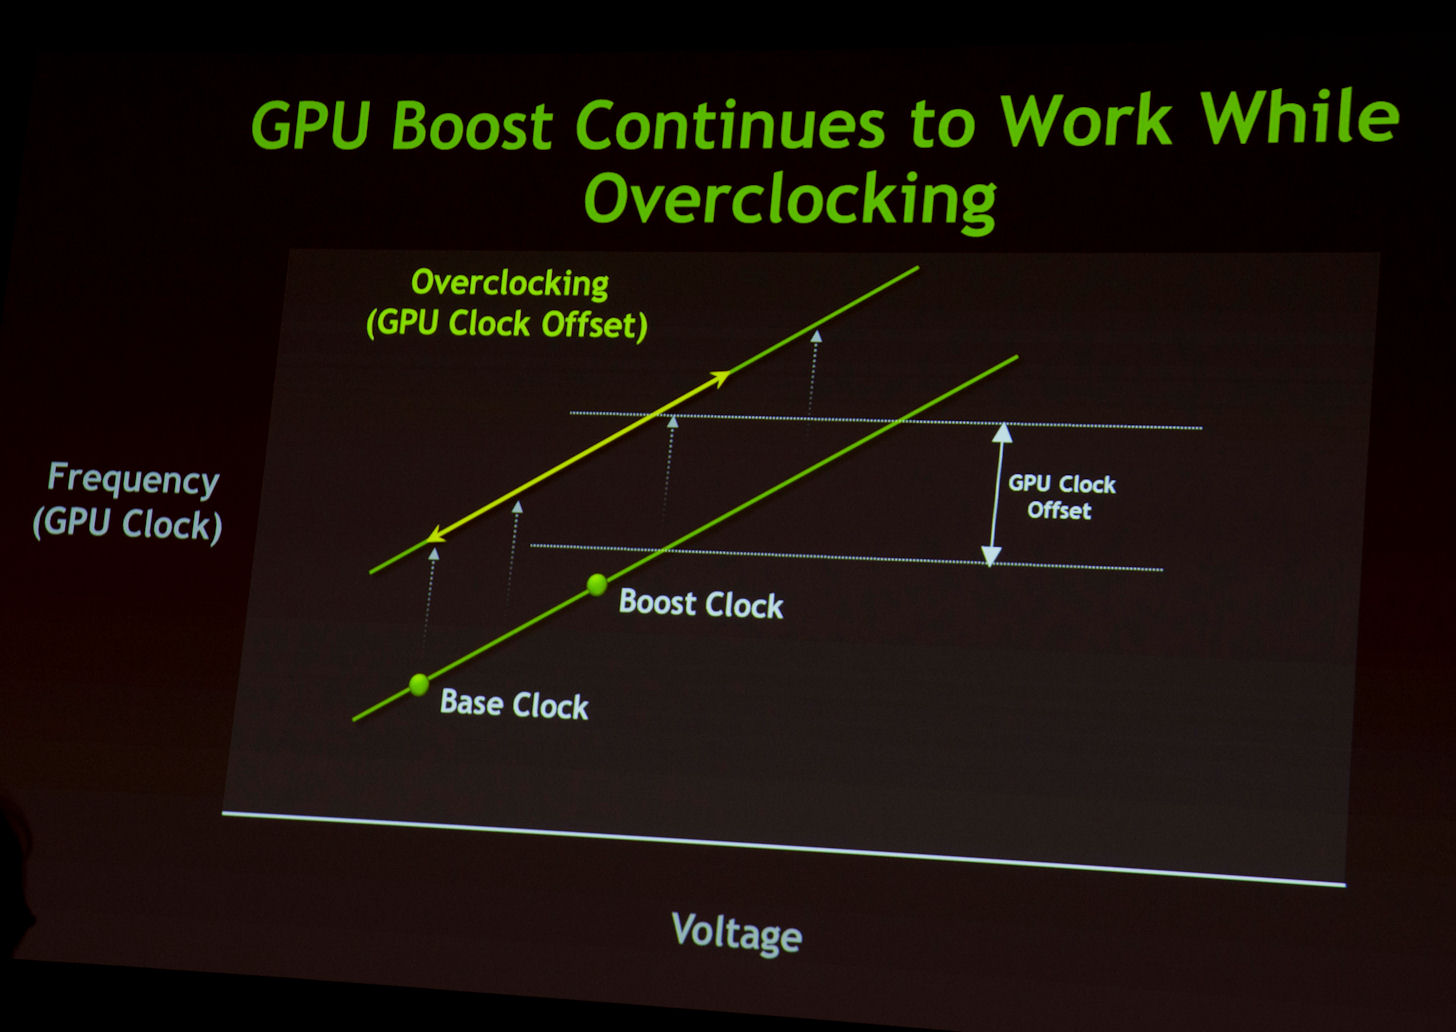 gtx680_gpu_boost21elz9 nvidia kepler geforce gtx680 thread now with reviews page 19 answer roost boost wiring diagram at gsmx.co